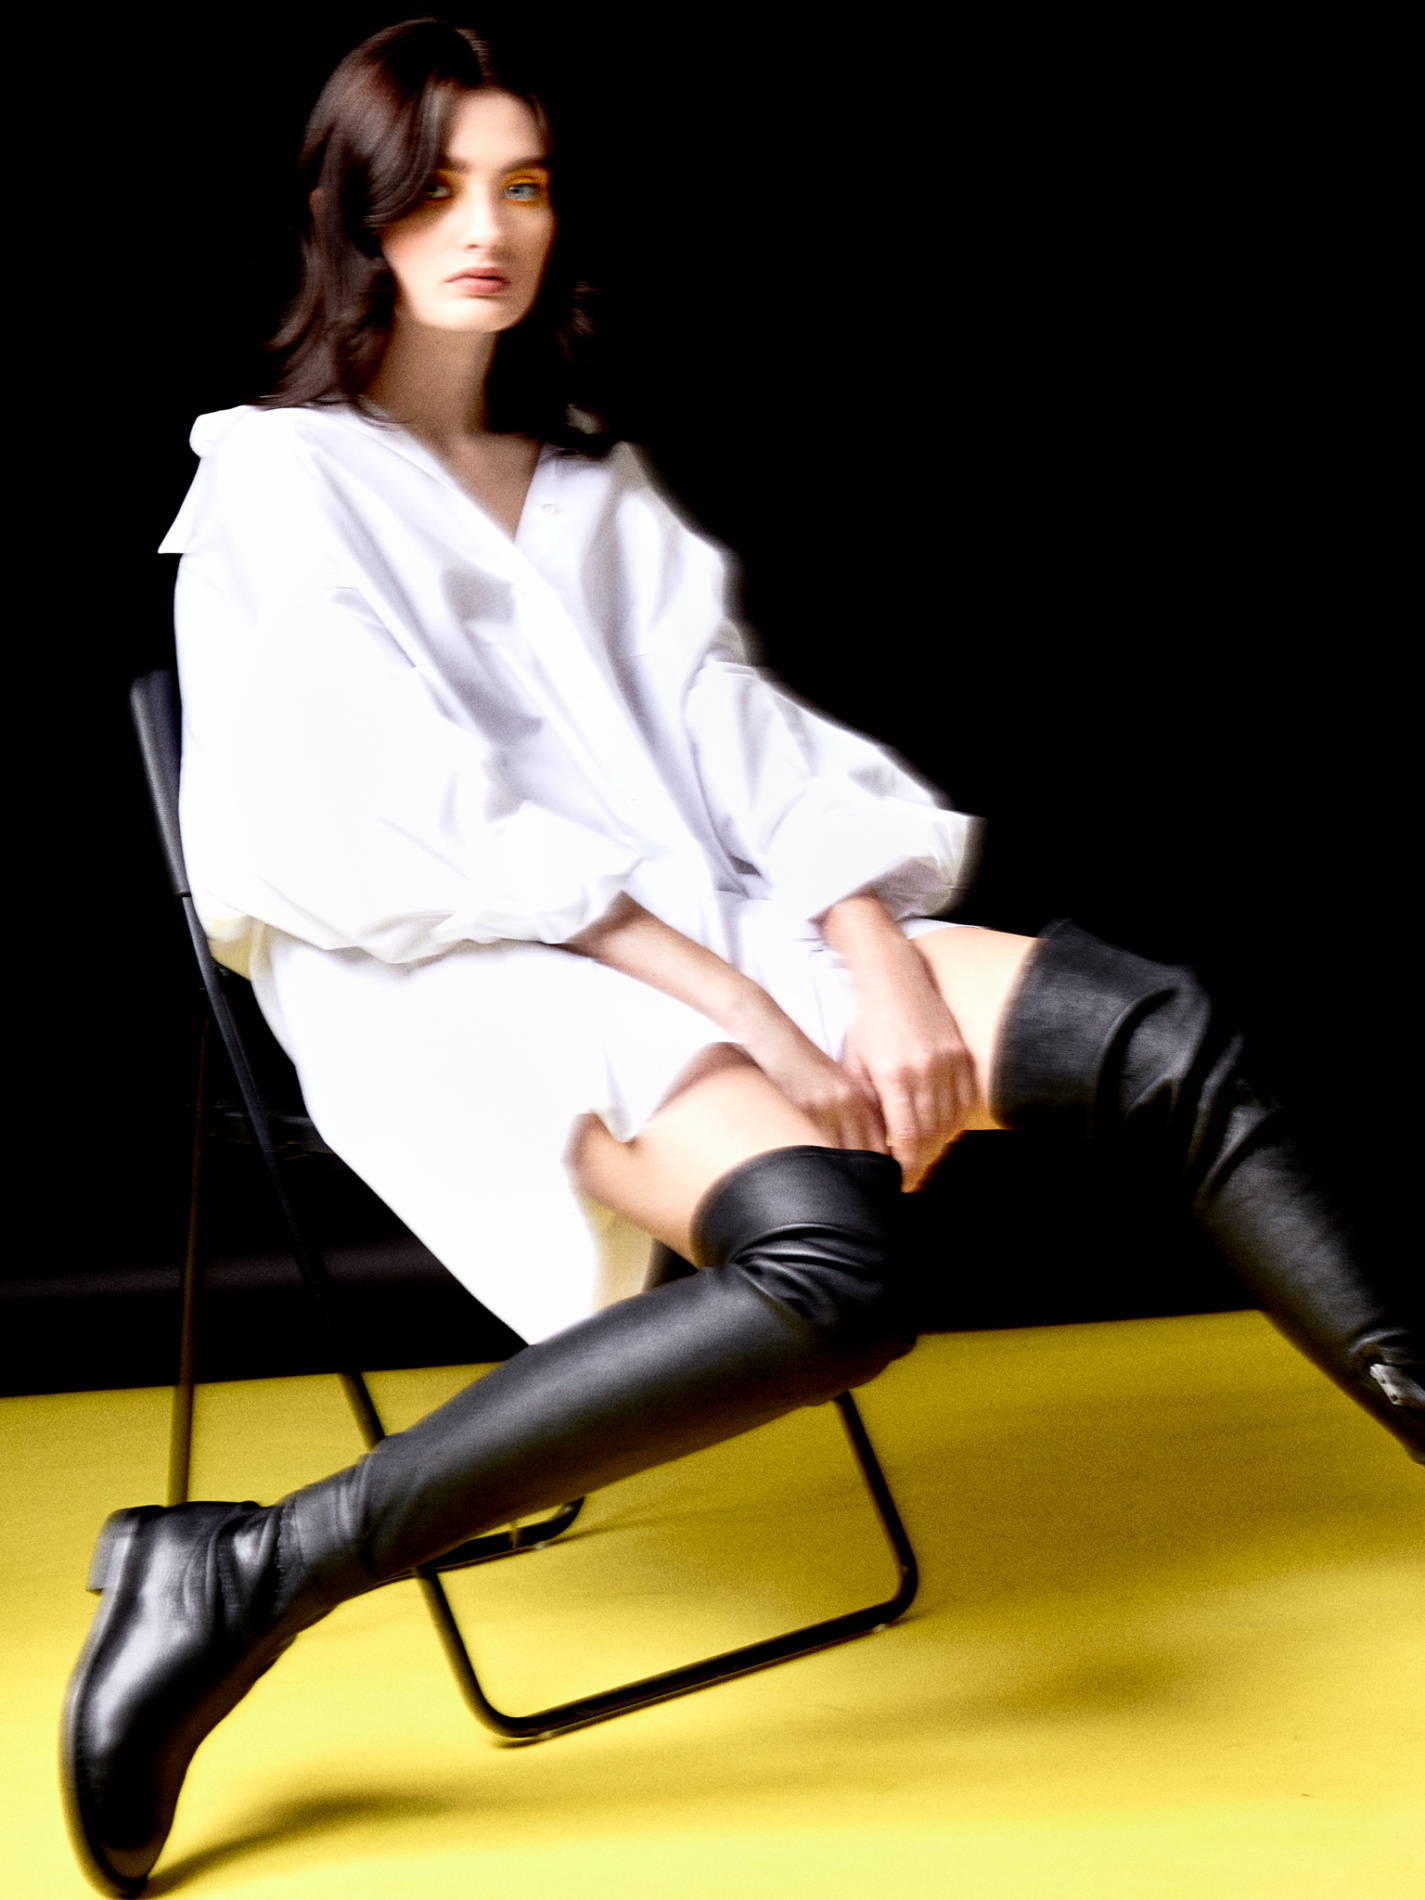 maison margeila shirt, ann demeulemeester thigh highs